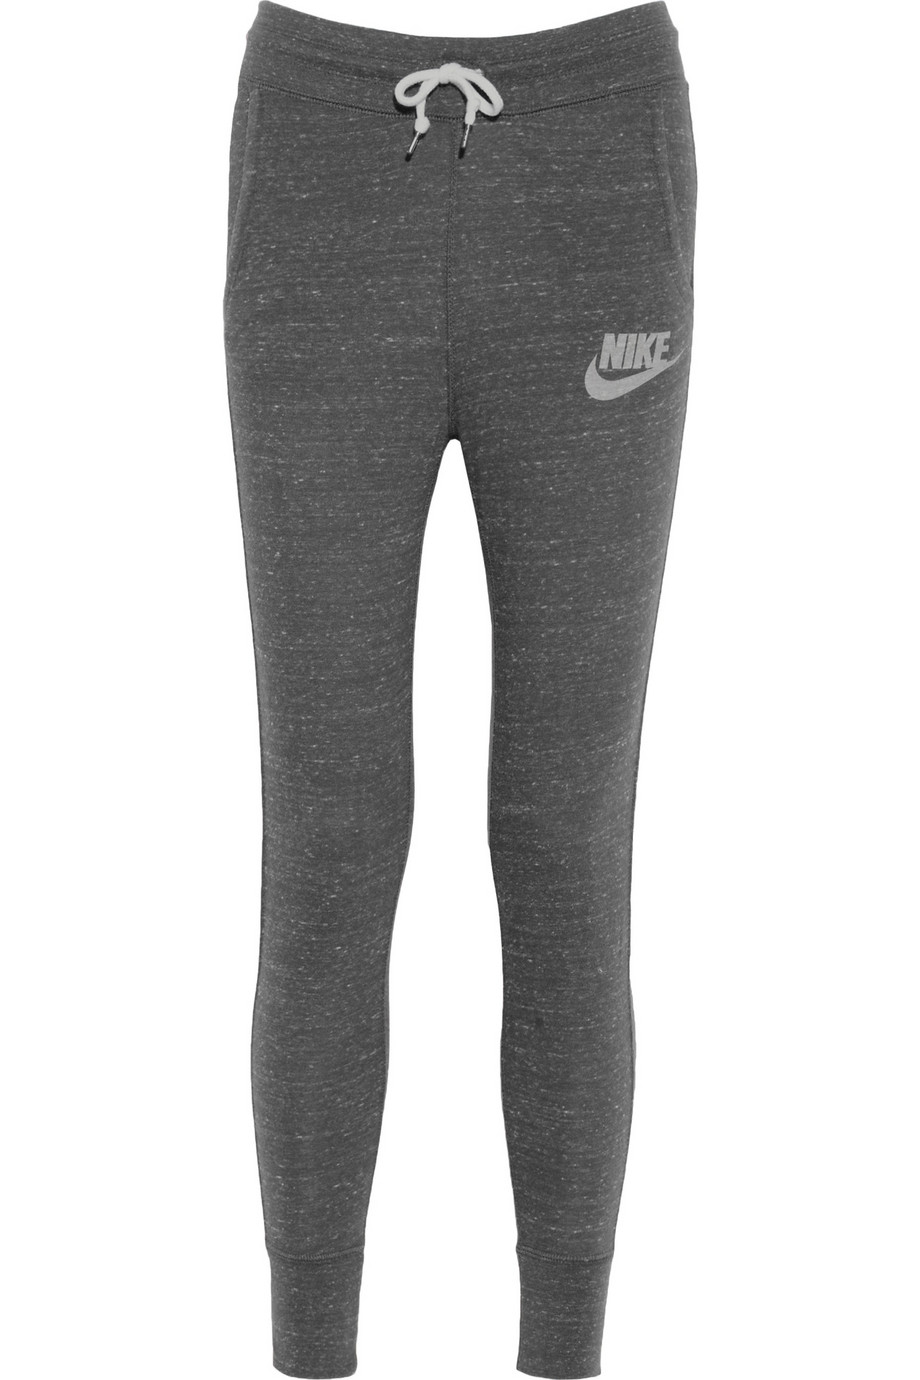 Excellent Buy Towngirl Grey Track Pants For Women Online In India  74279640